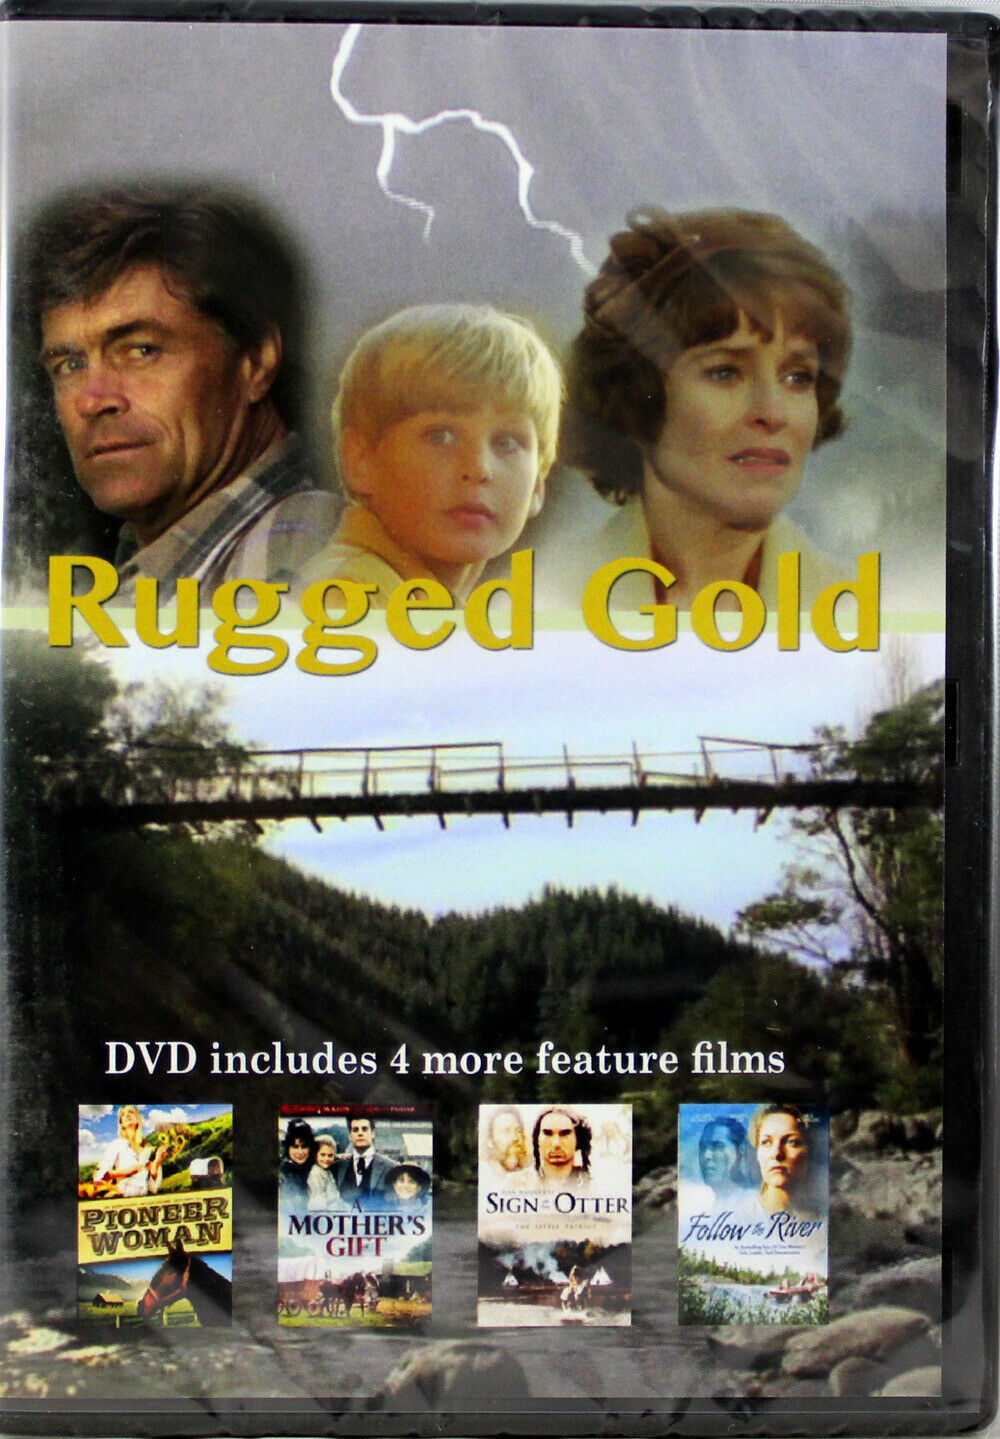 Primary image for Rugged Gold NEW DVD Also Follow River Pioneer Woman Mother's Gift Sign of Otter